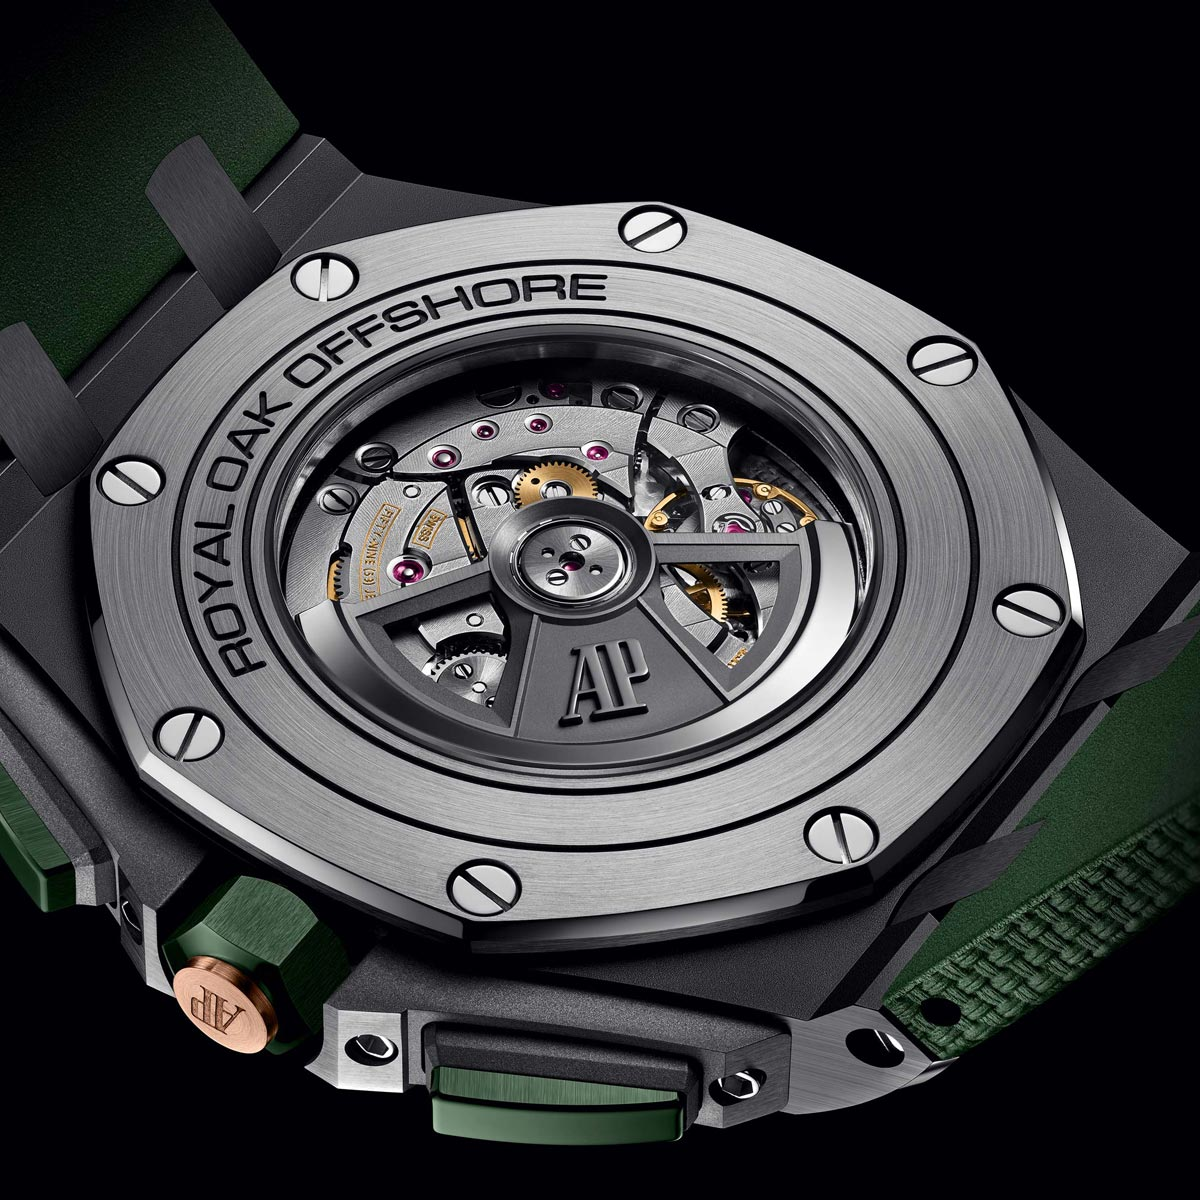 La Cote des Montres : Photo - Audemars Piguet Royal Oak Offshore Chronographe Automatique / 44 mm